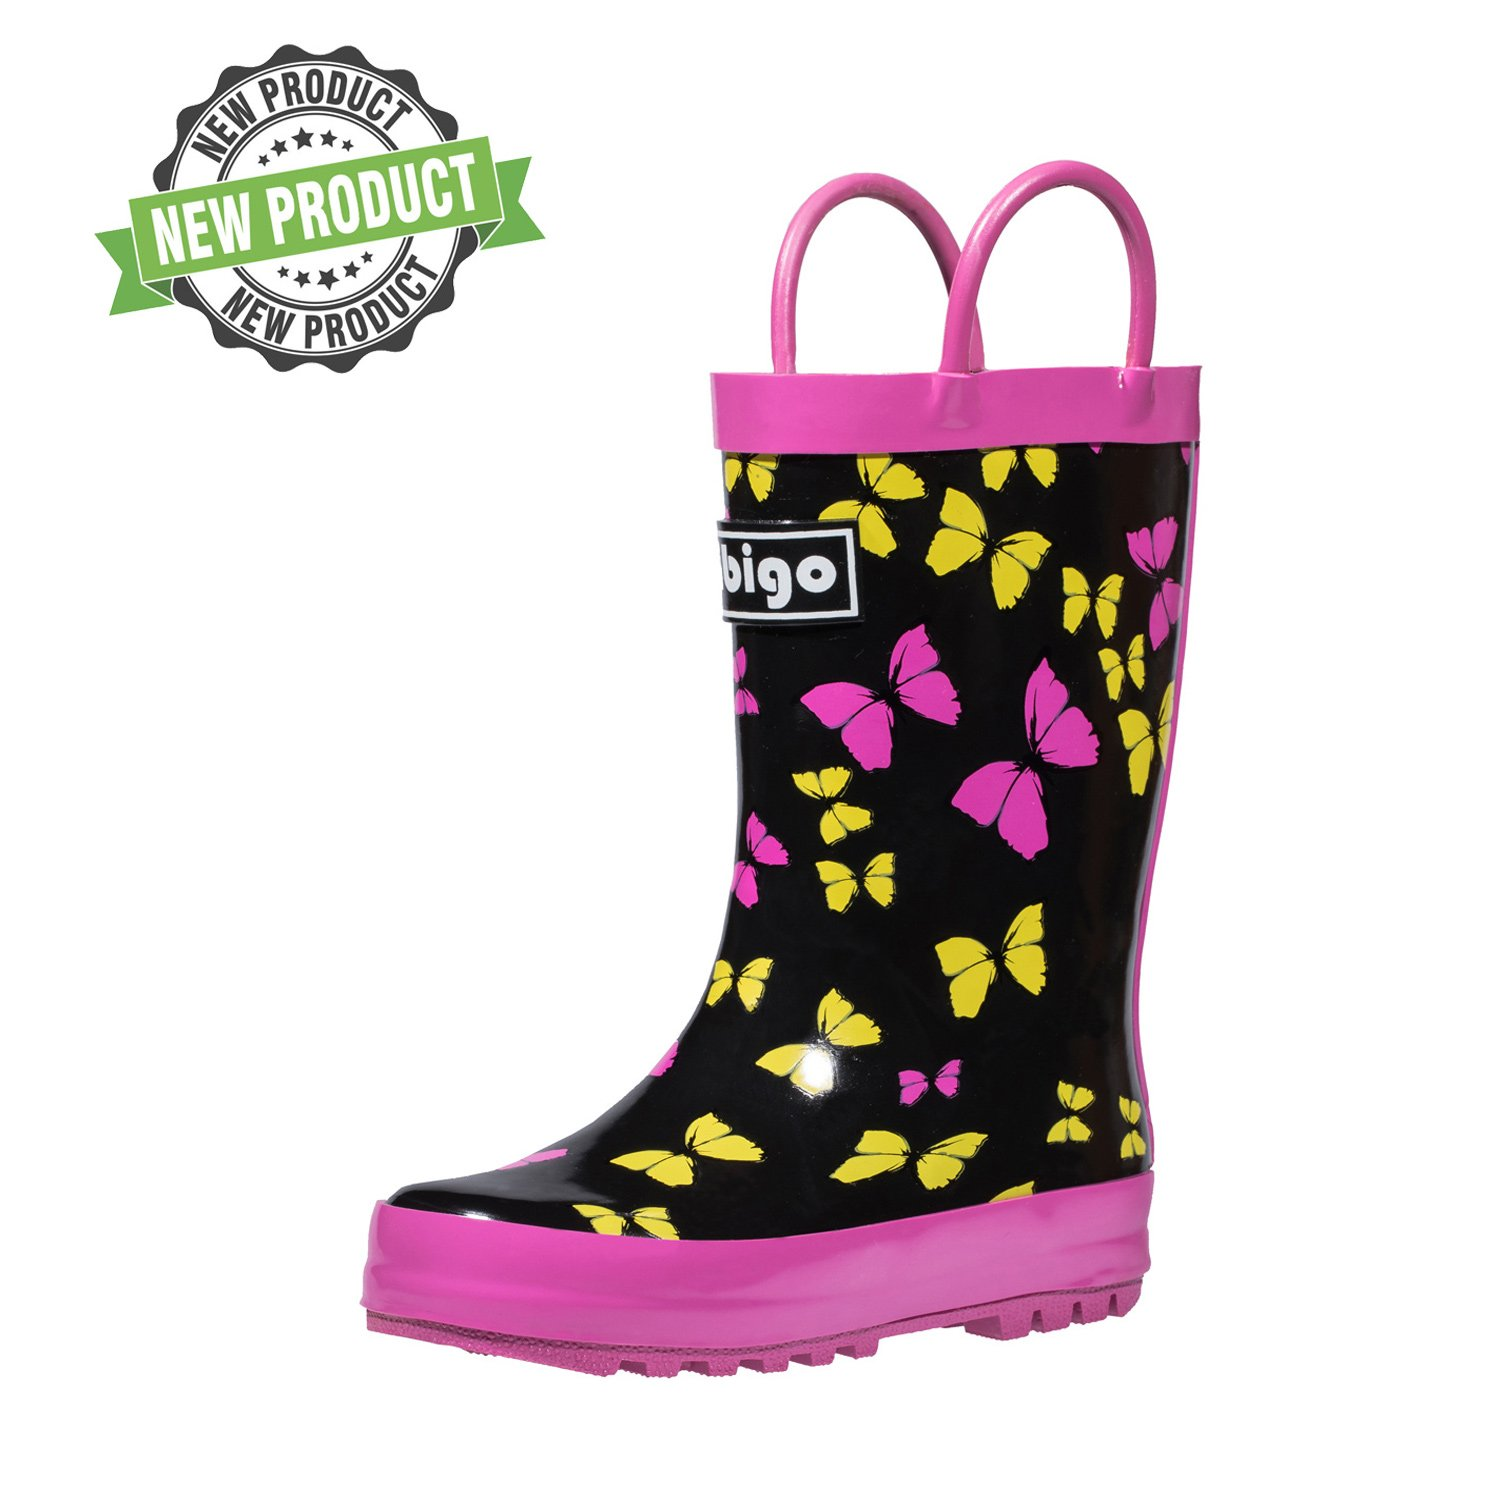 hibigo Children's Natural Rubber Rain Boots with Handles Easy for Little Kids & Toddler Girls, Butterfly